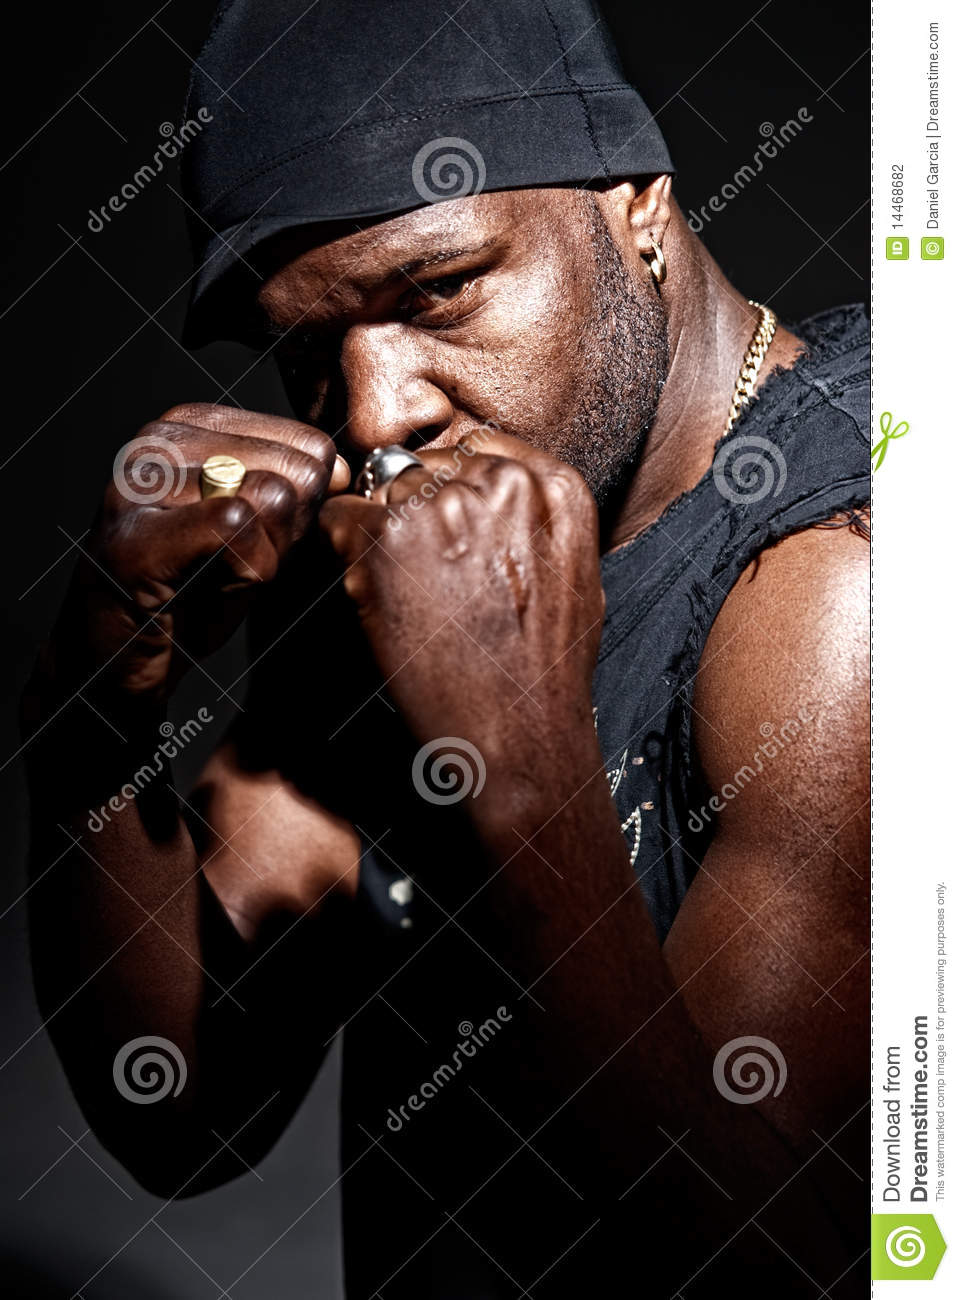 Black Gangster Men Fight Portrait High Contrast Stock Photography ...